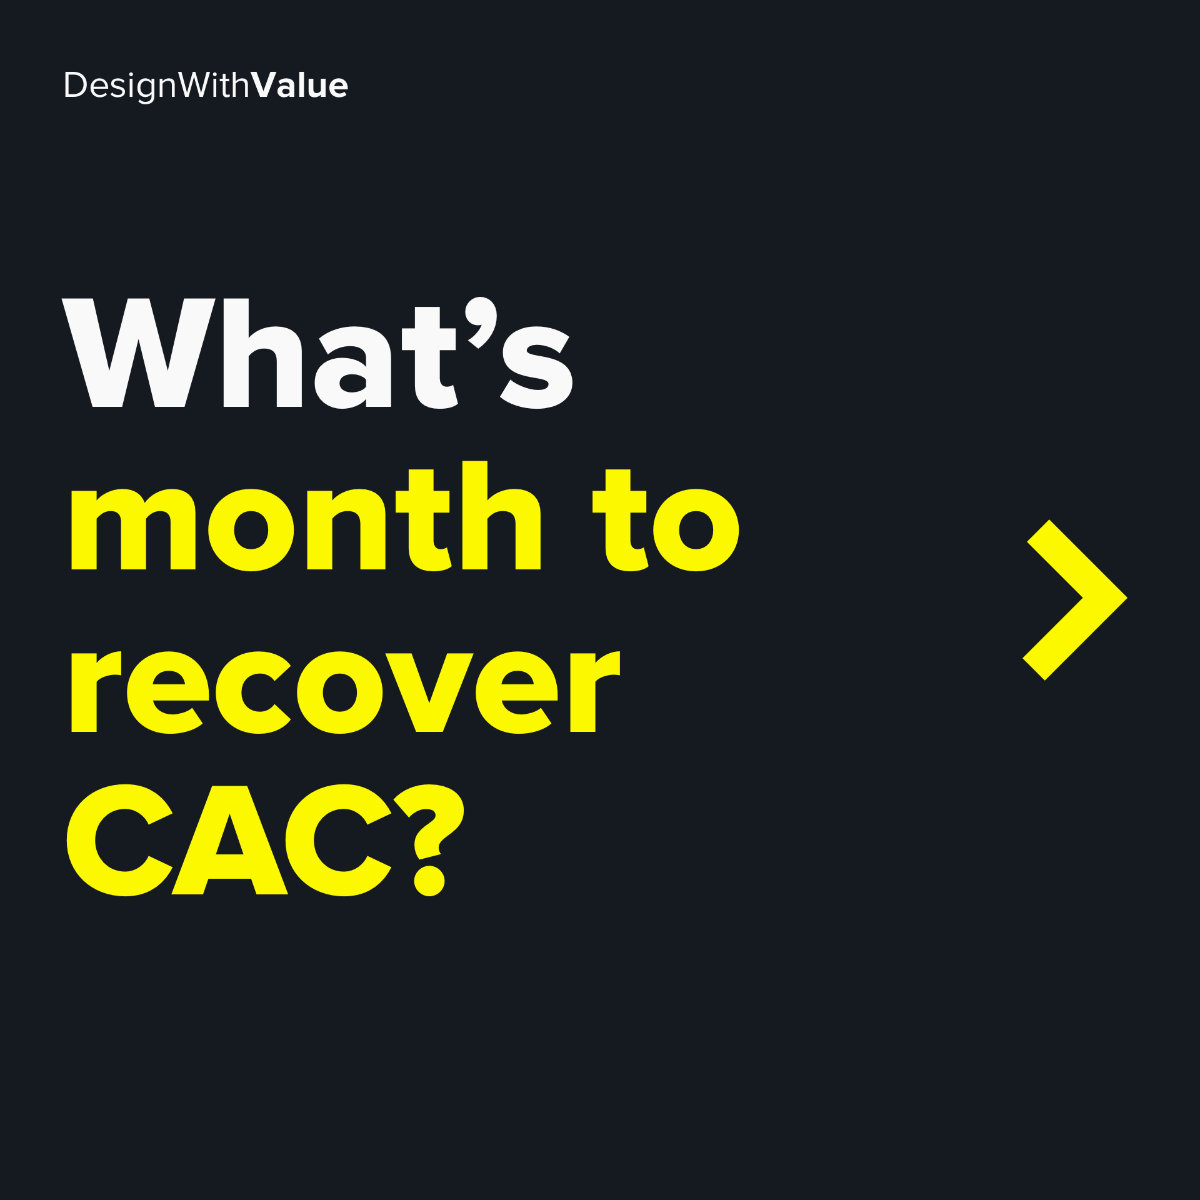 What's month to recover CAC?